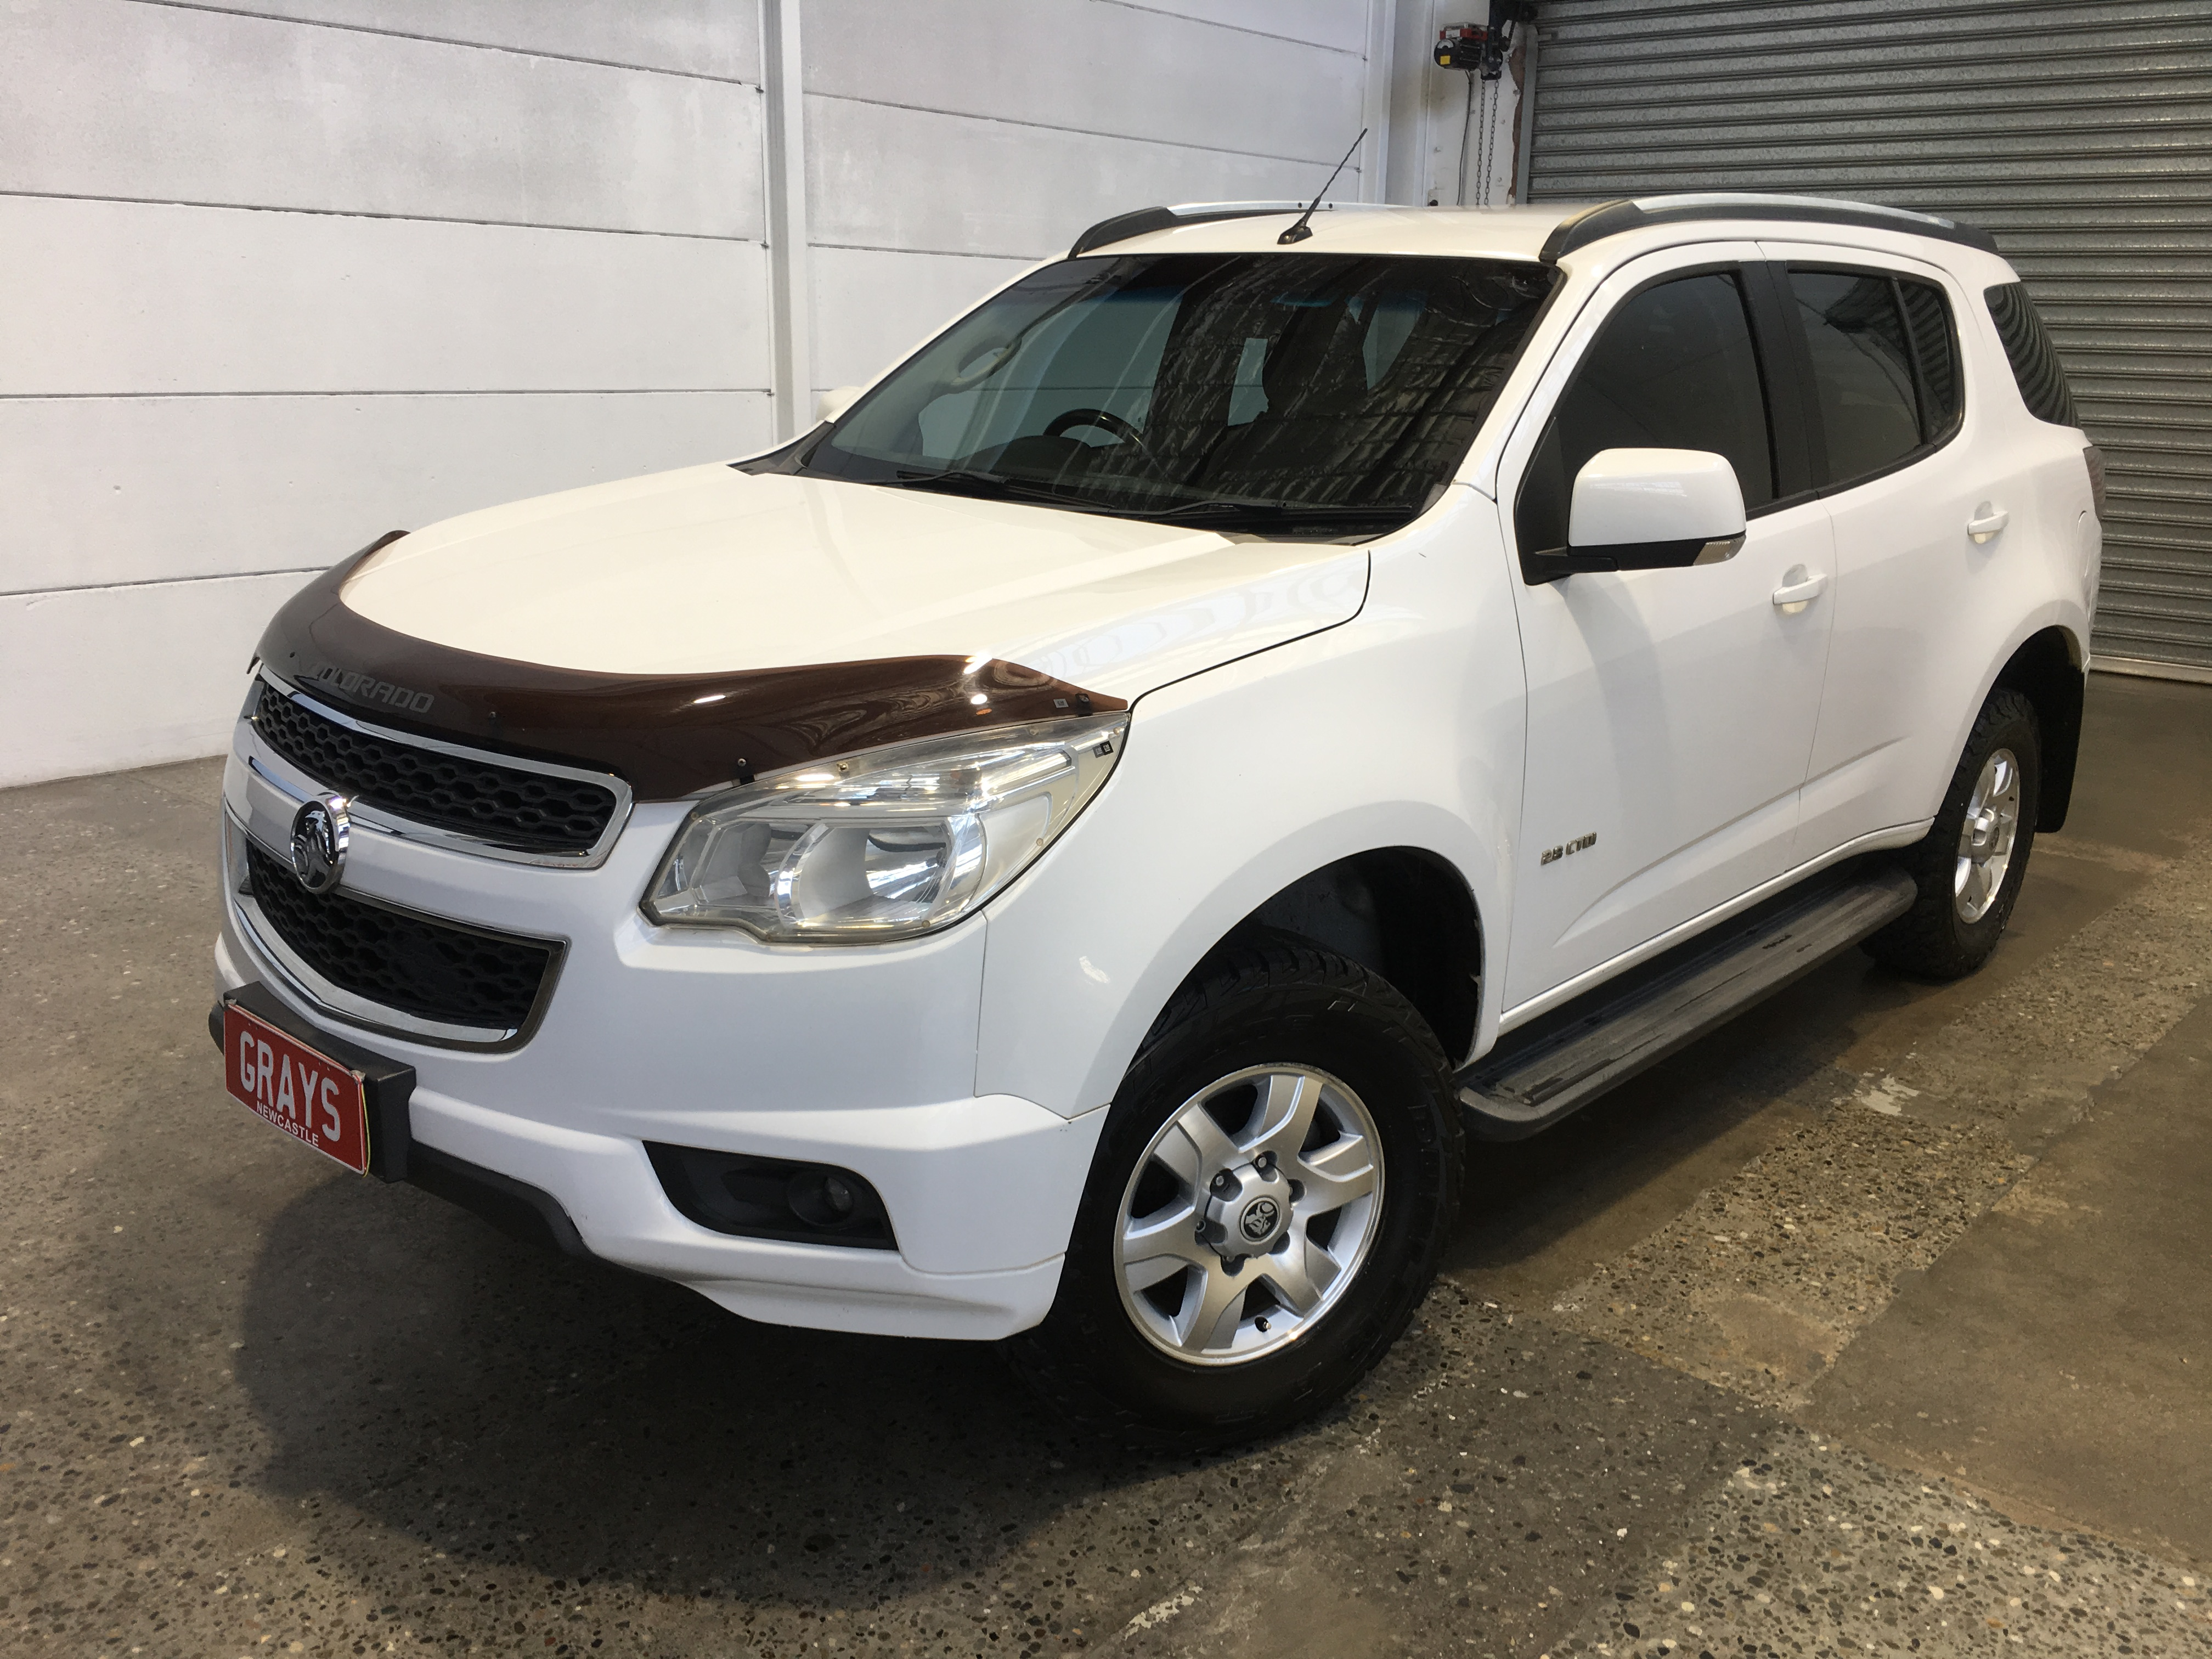 2013 Holden Colorado 7 LT RG Turbo Diesel Automatic 7 Seats Wagon